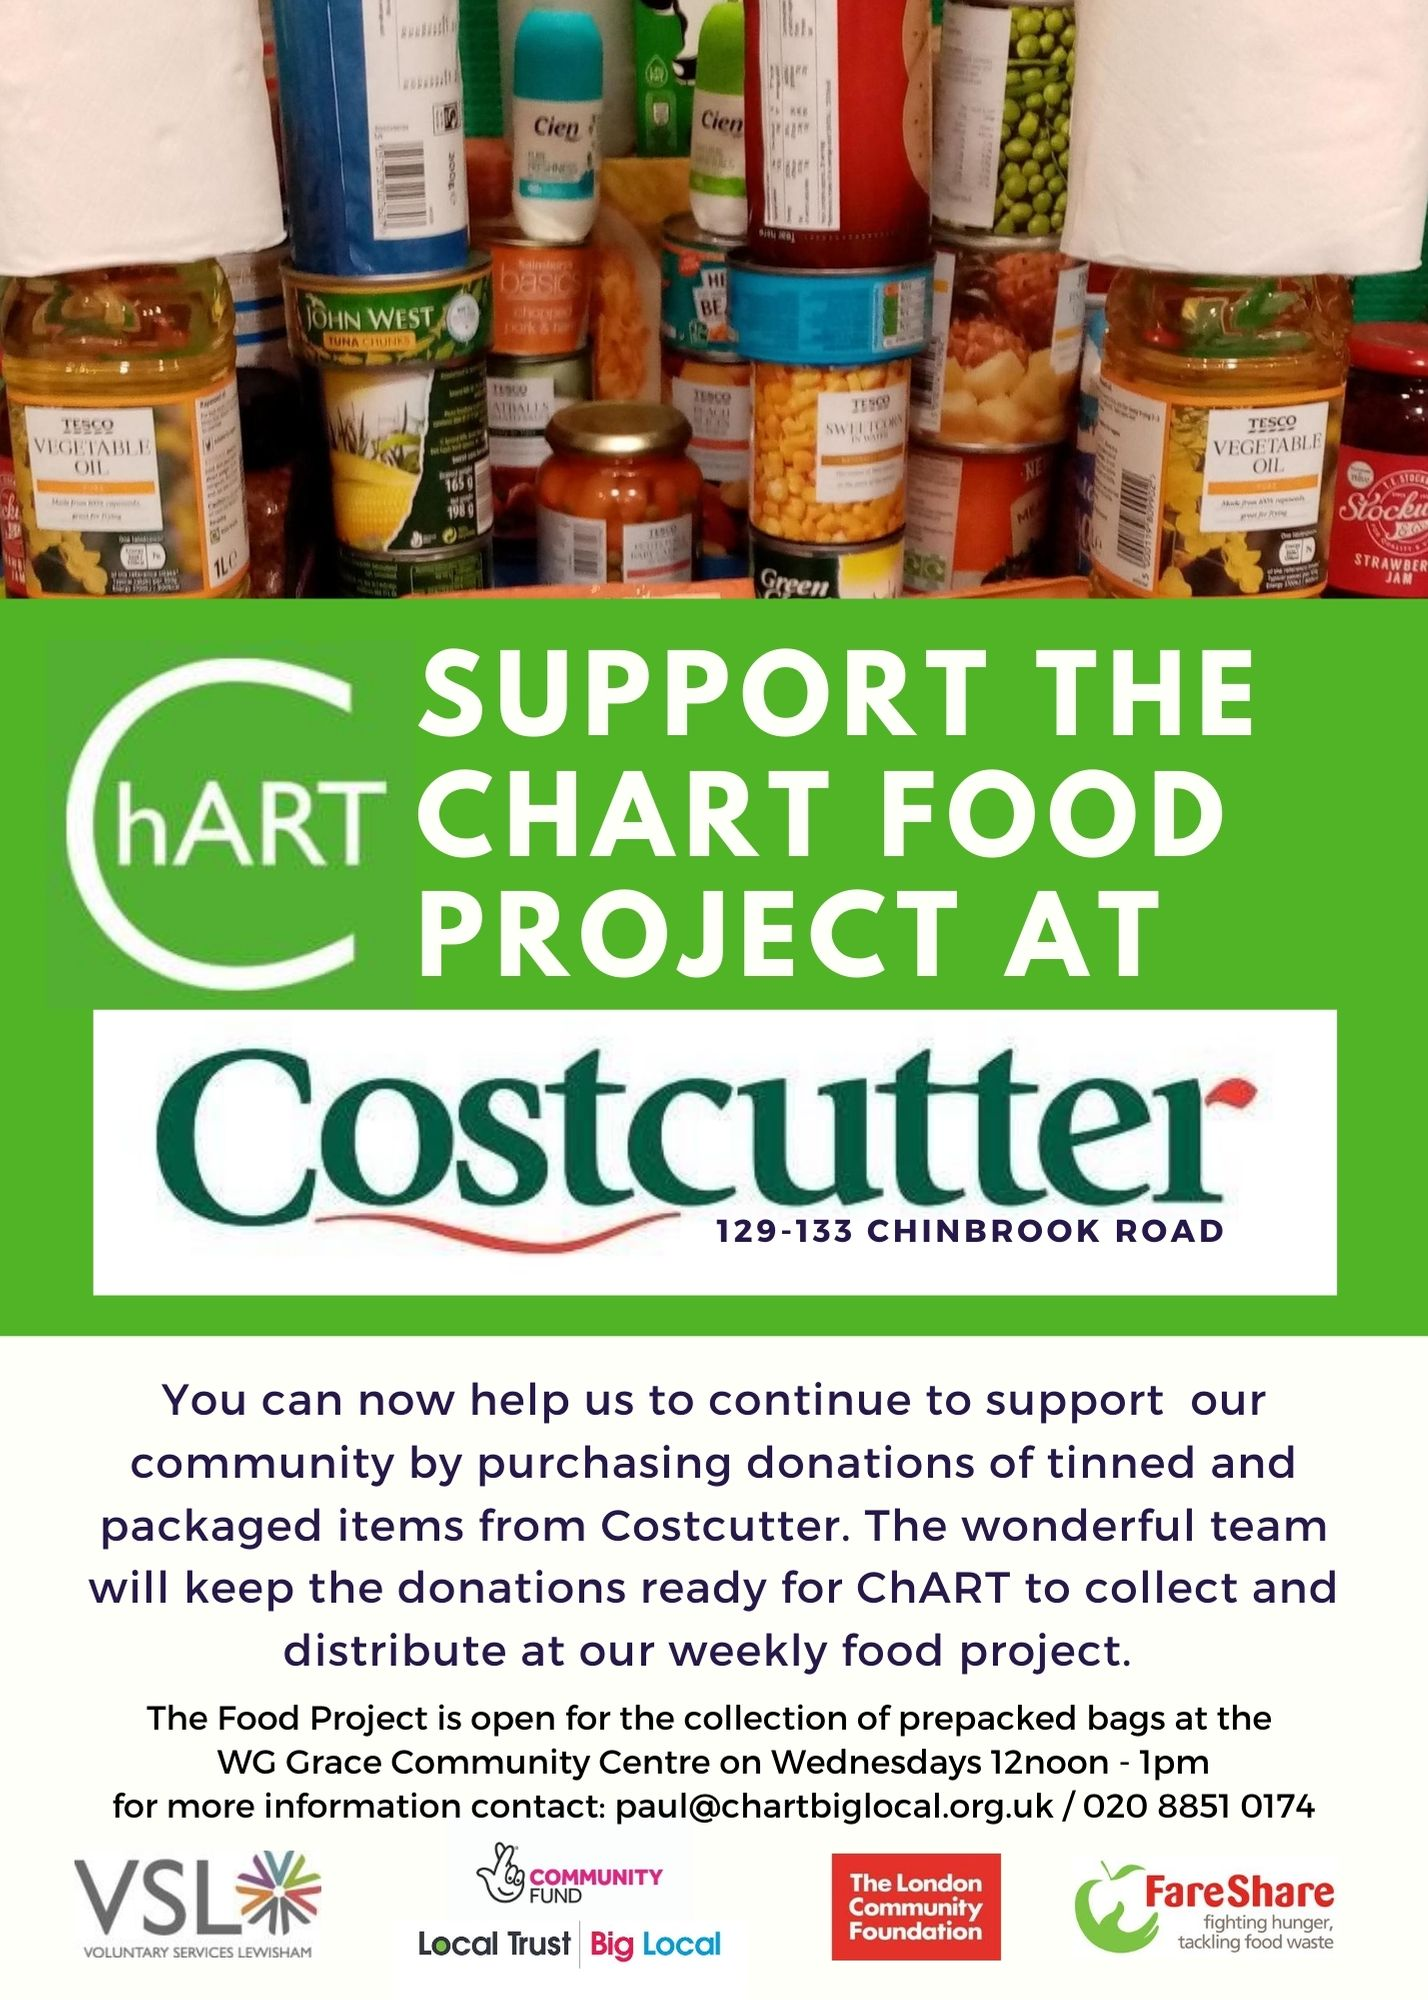 support food project costcutter